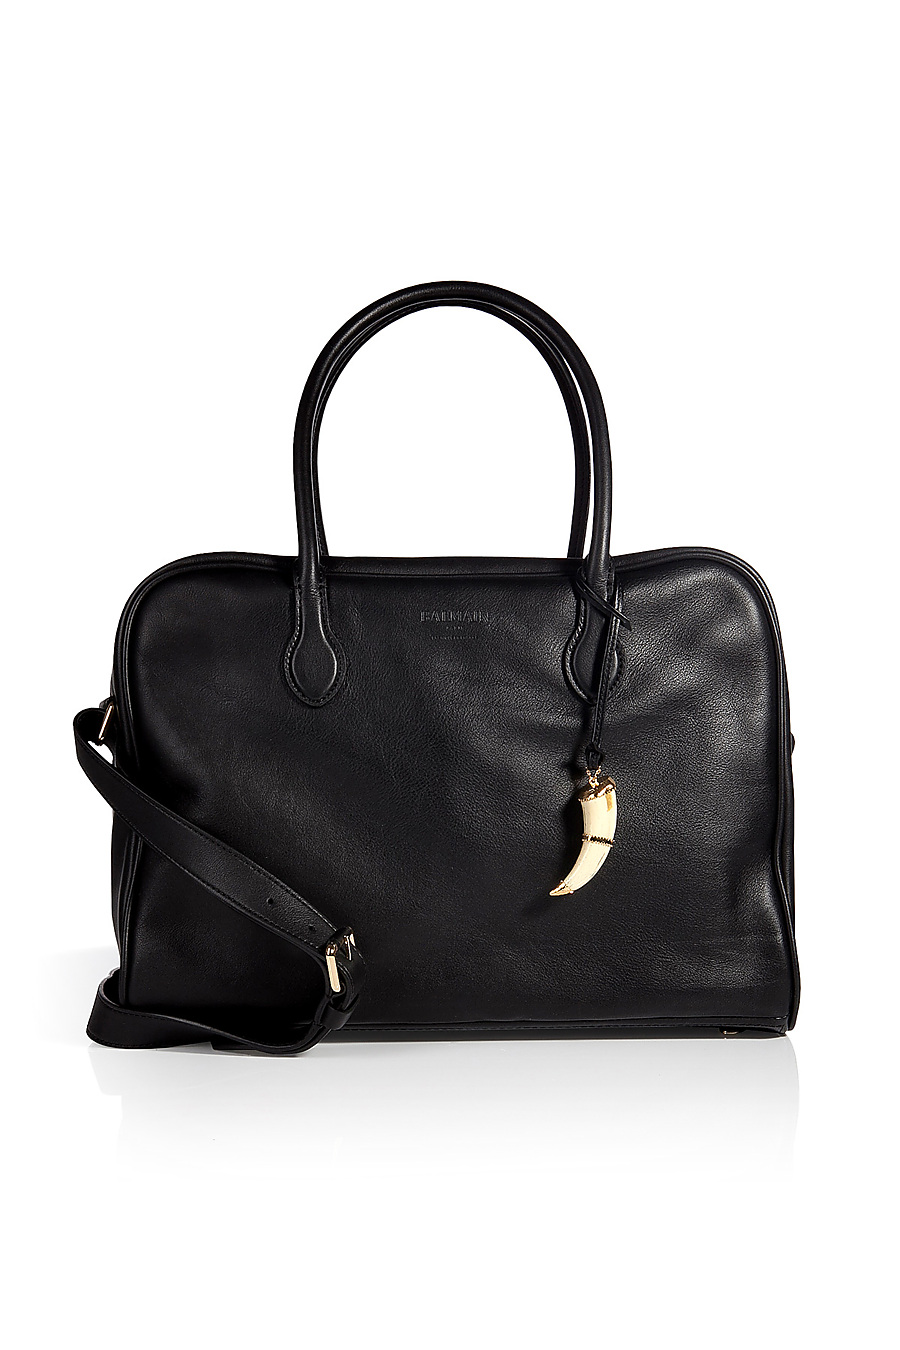 Pierre 24 hours leather tote